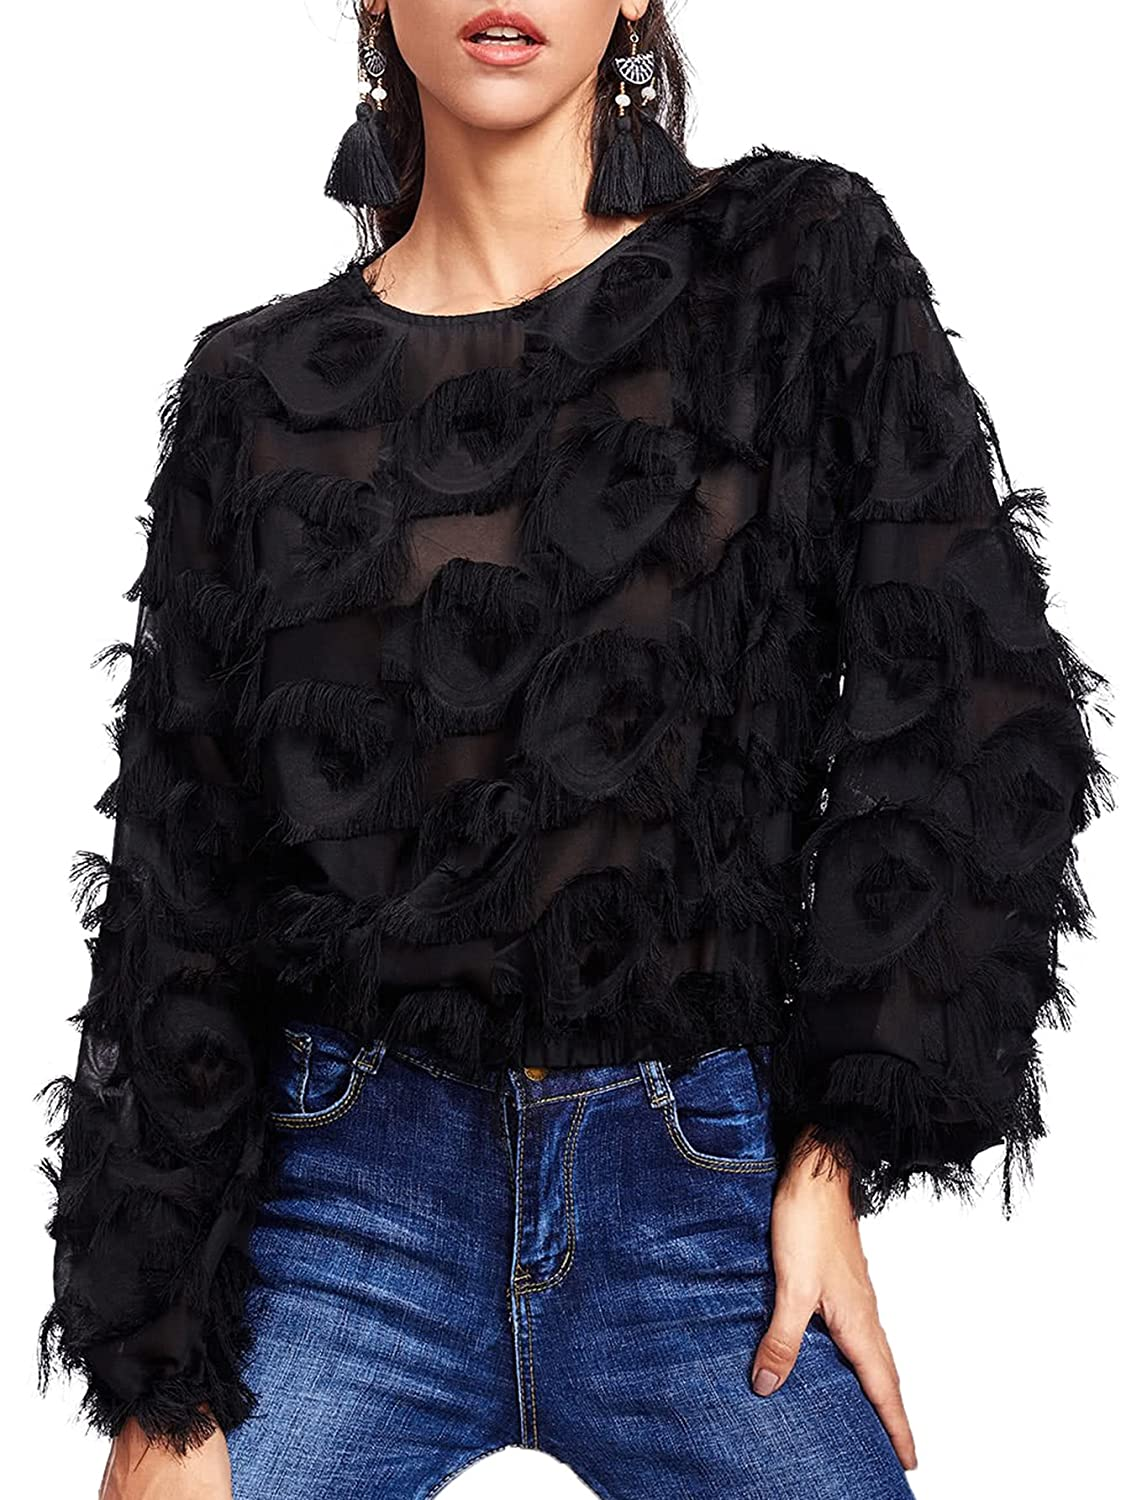 119683f779a Romwe Women's Casual Round Neck Fringe Patch Long Sleeve Mesh Top at Amazon  Women's Clothing store: